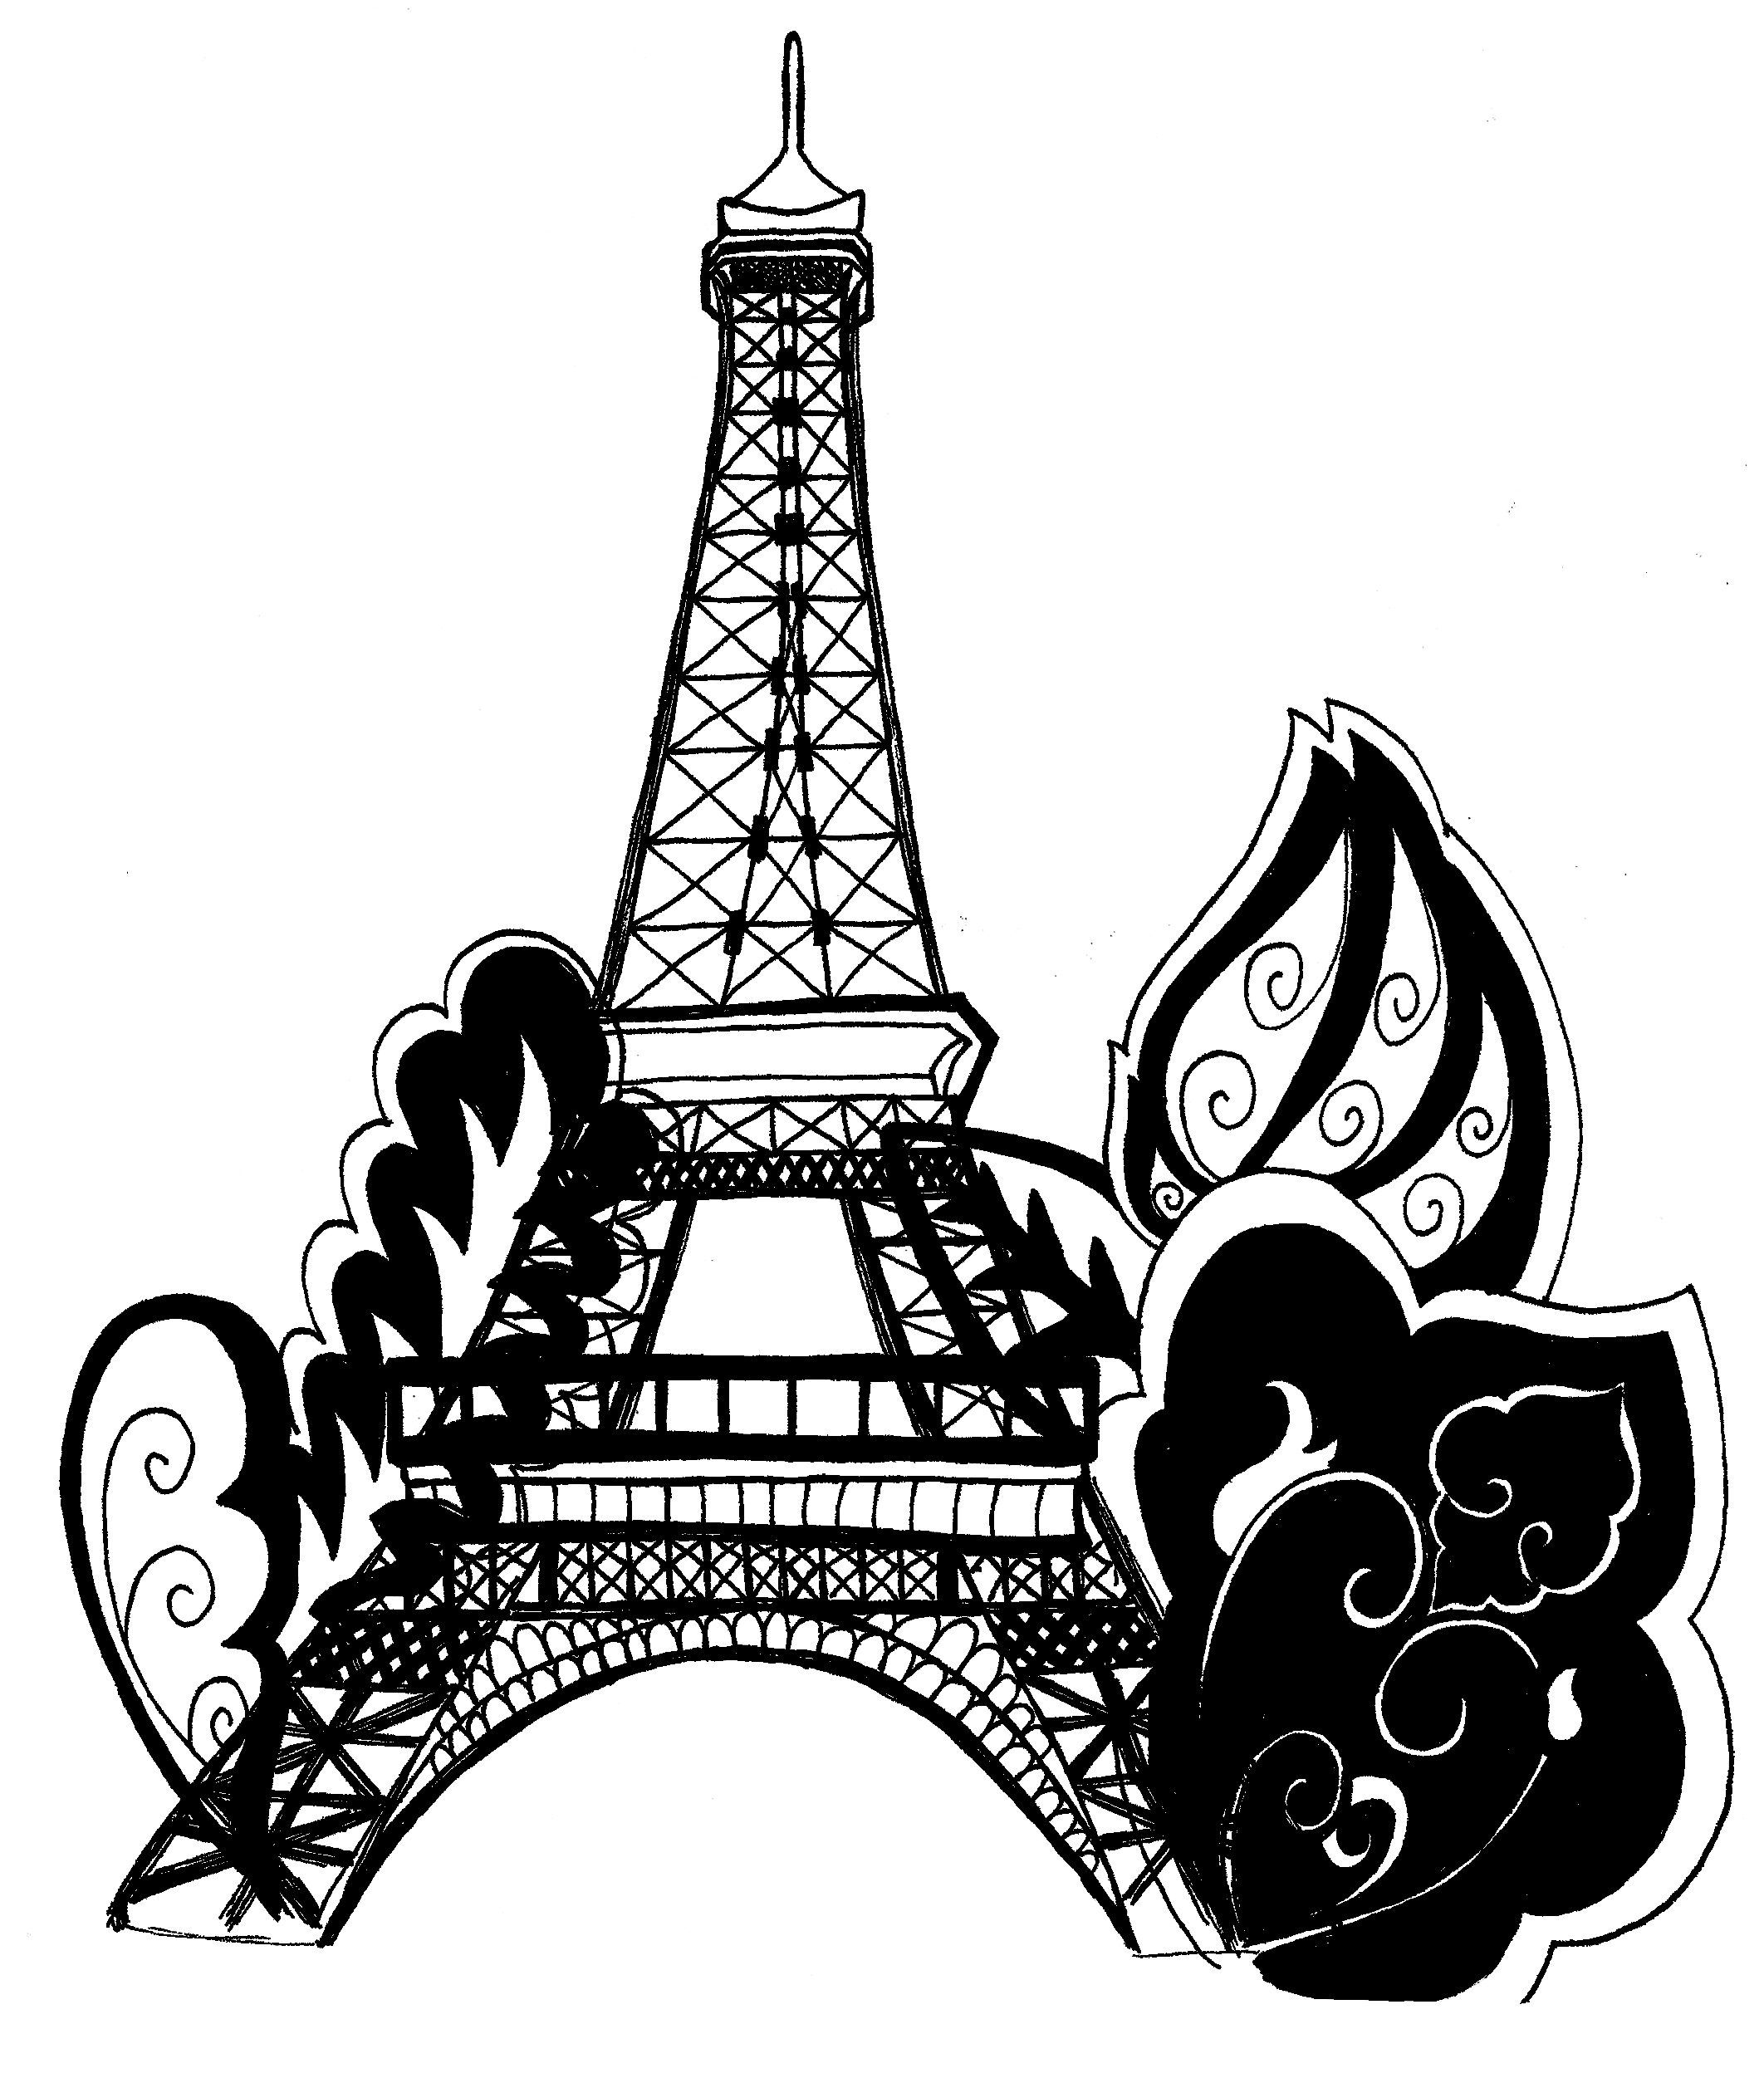 eiffel tower coloring pages amazing eiffel tower coloring page download print coloring pages eiffel tower